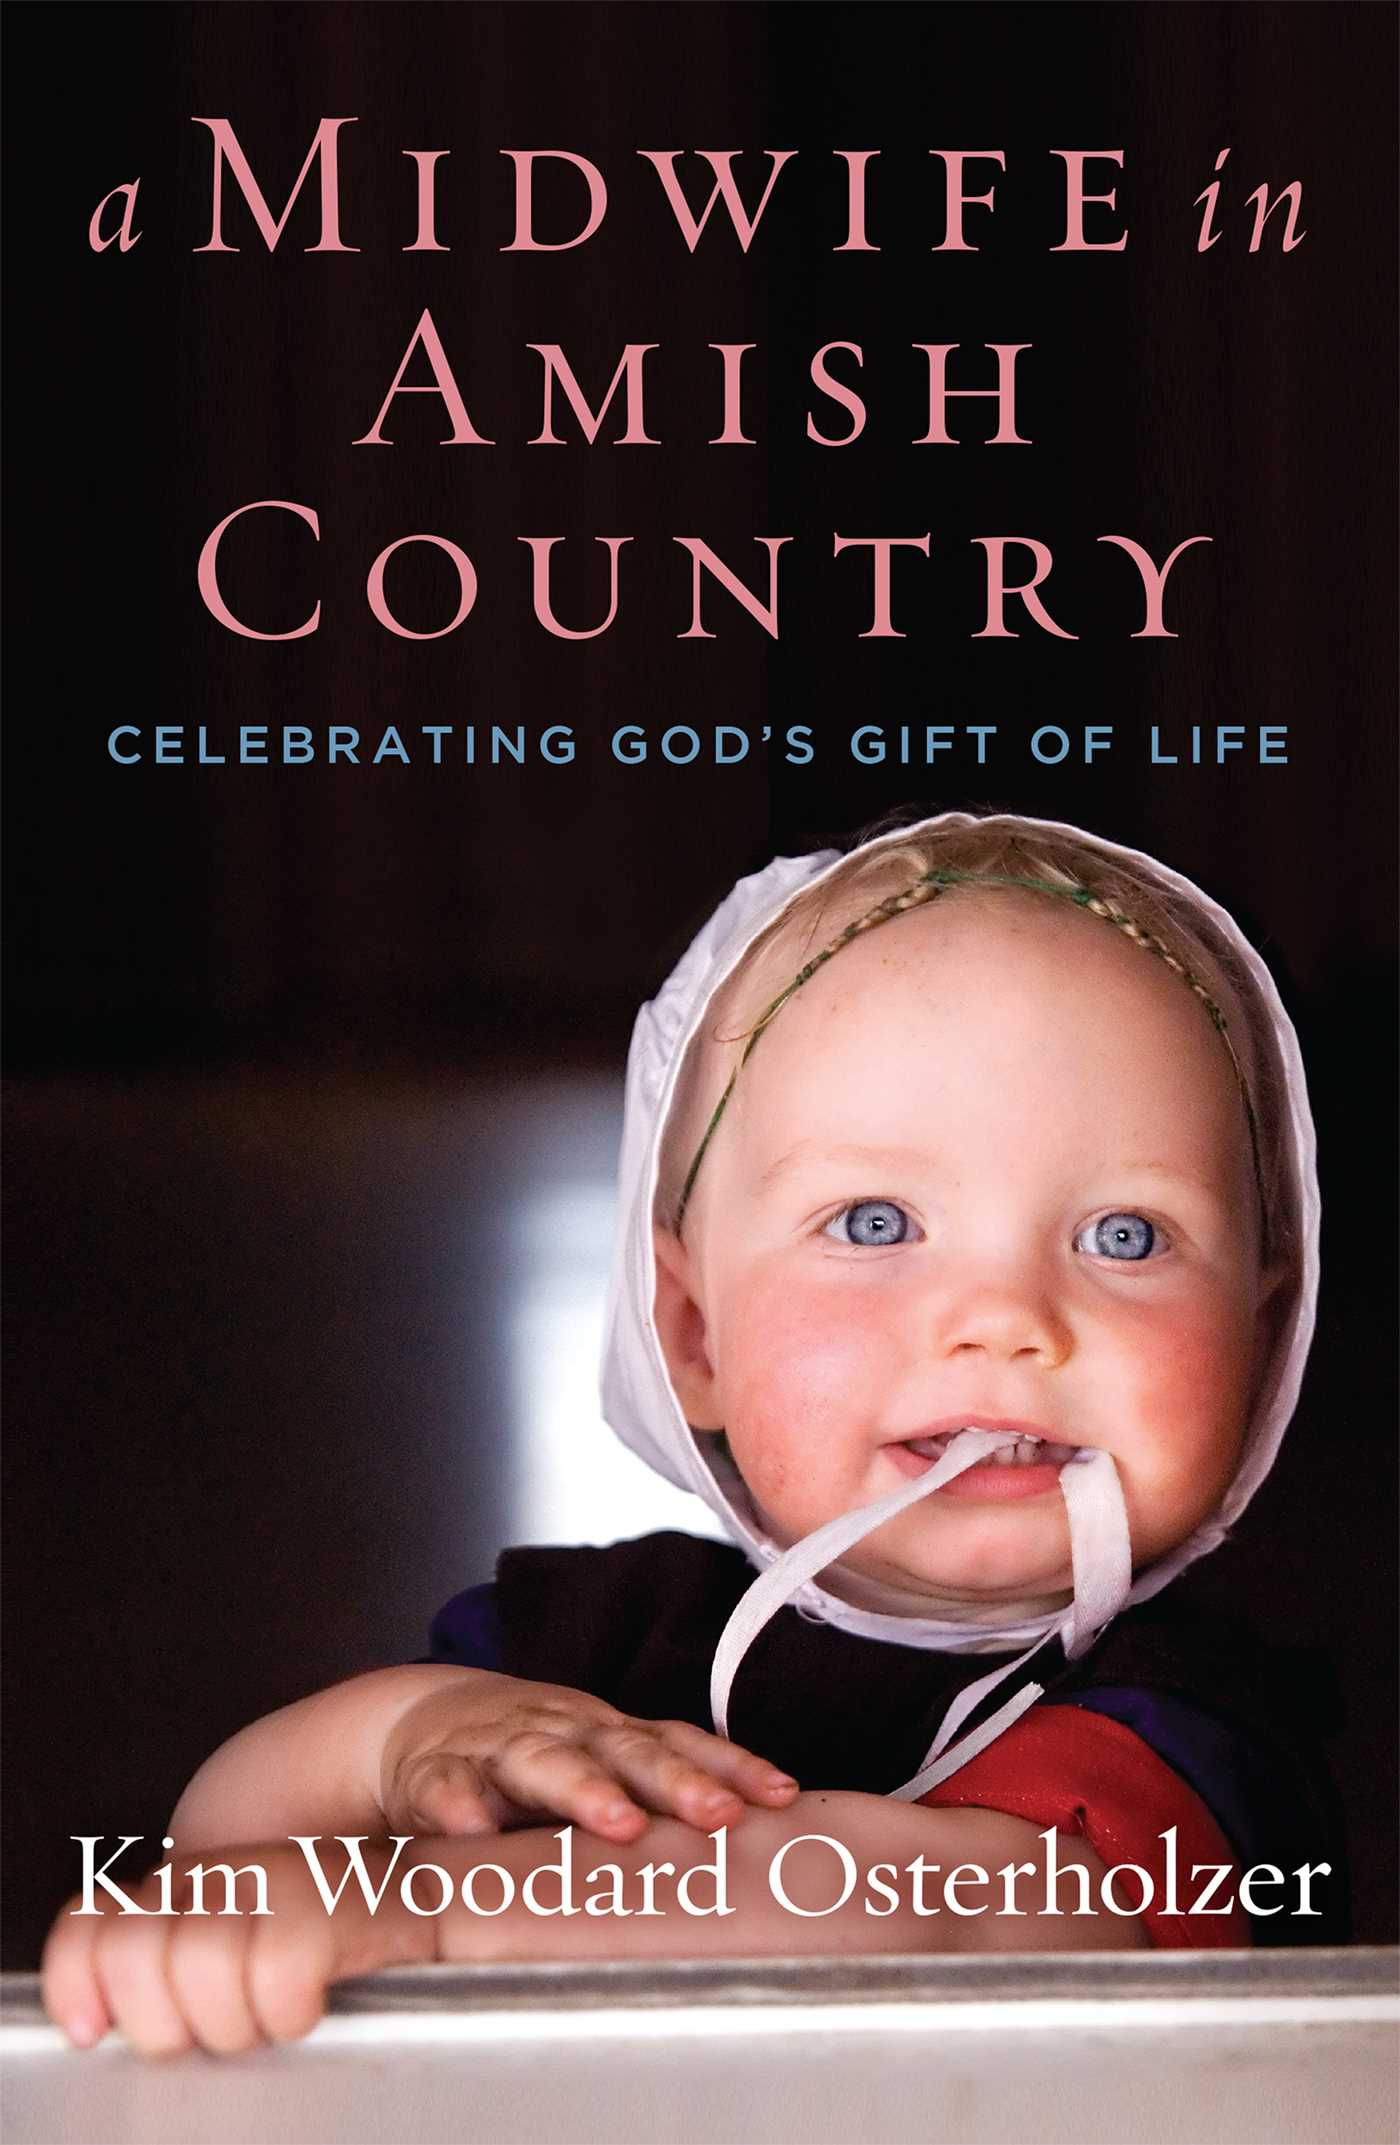 A midwife in amish country 9781621577270 hr